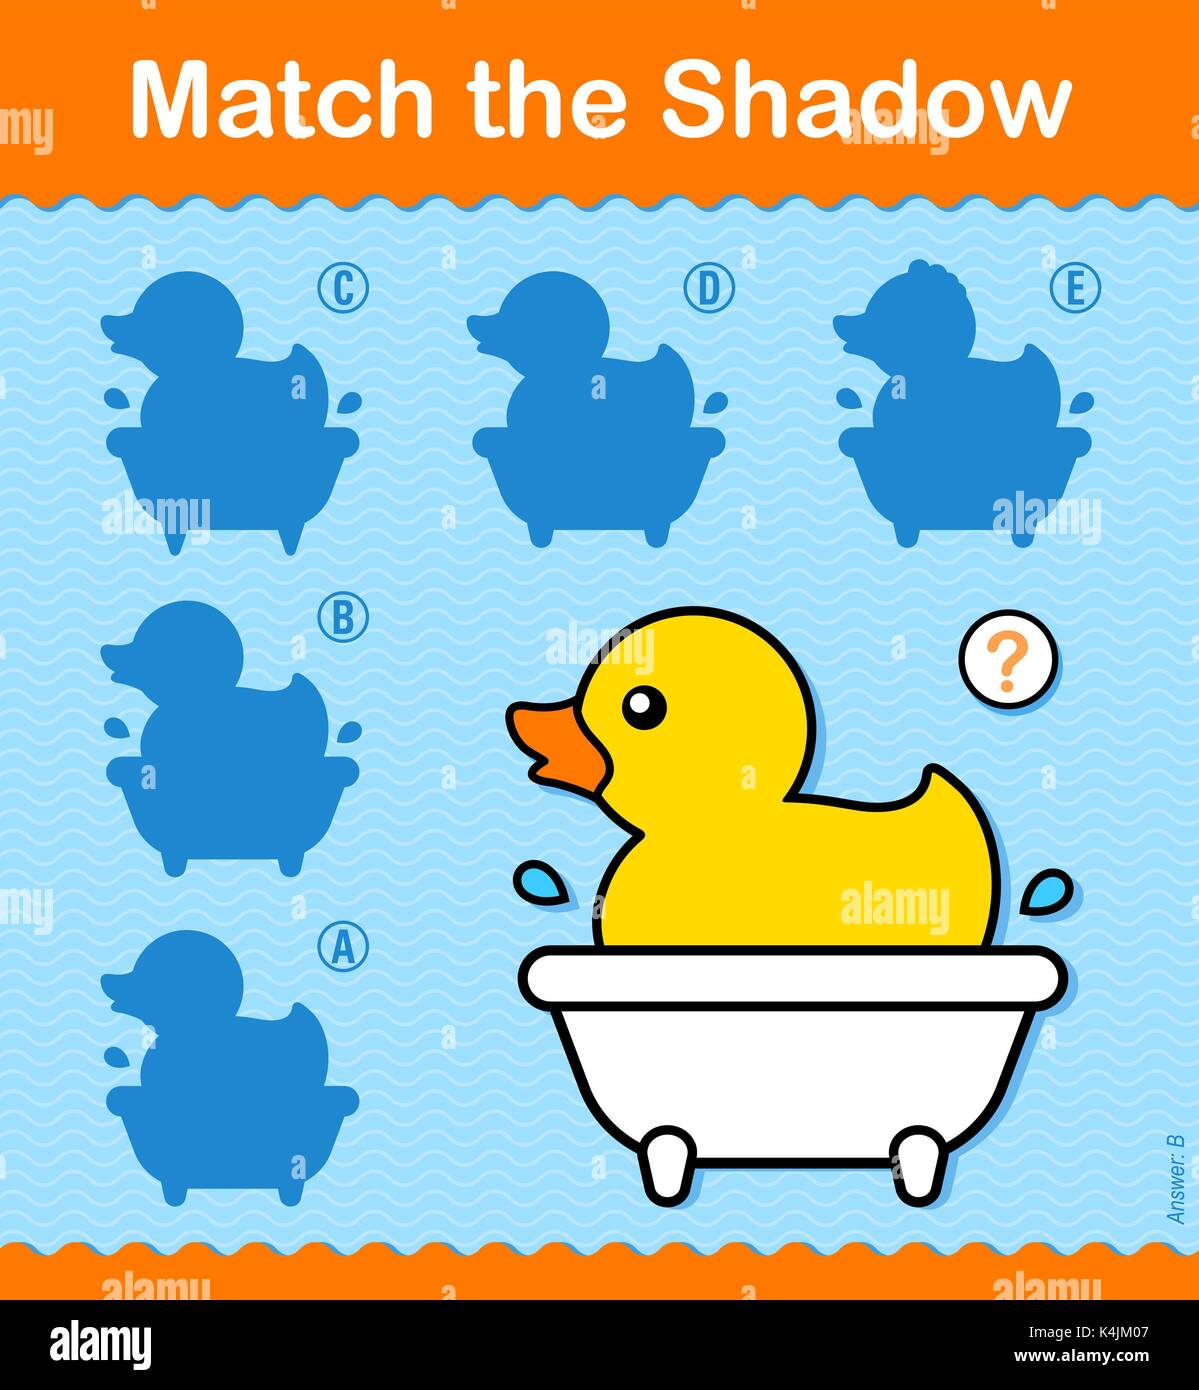 Match Shadow Puzzle Worksheet Kids Stock Photos Amp Match